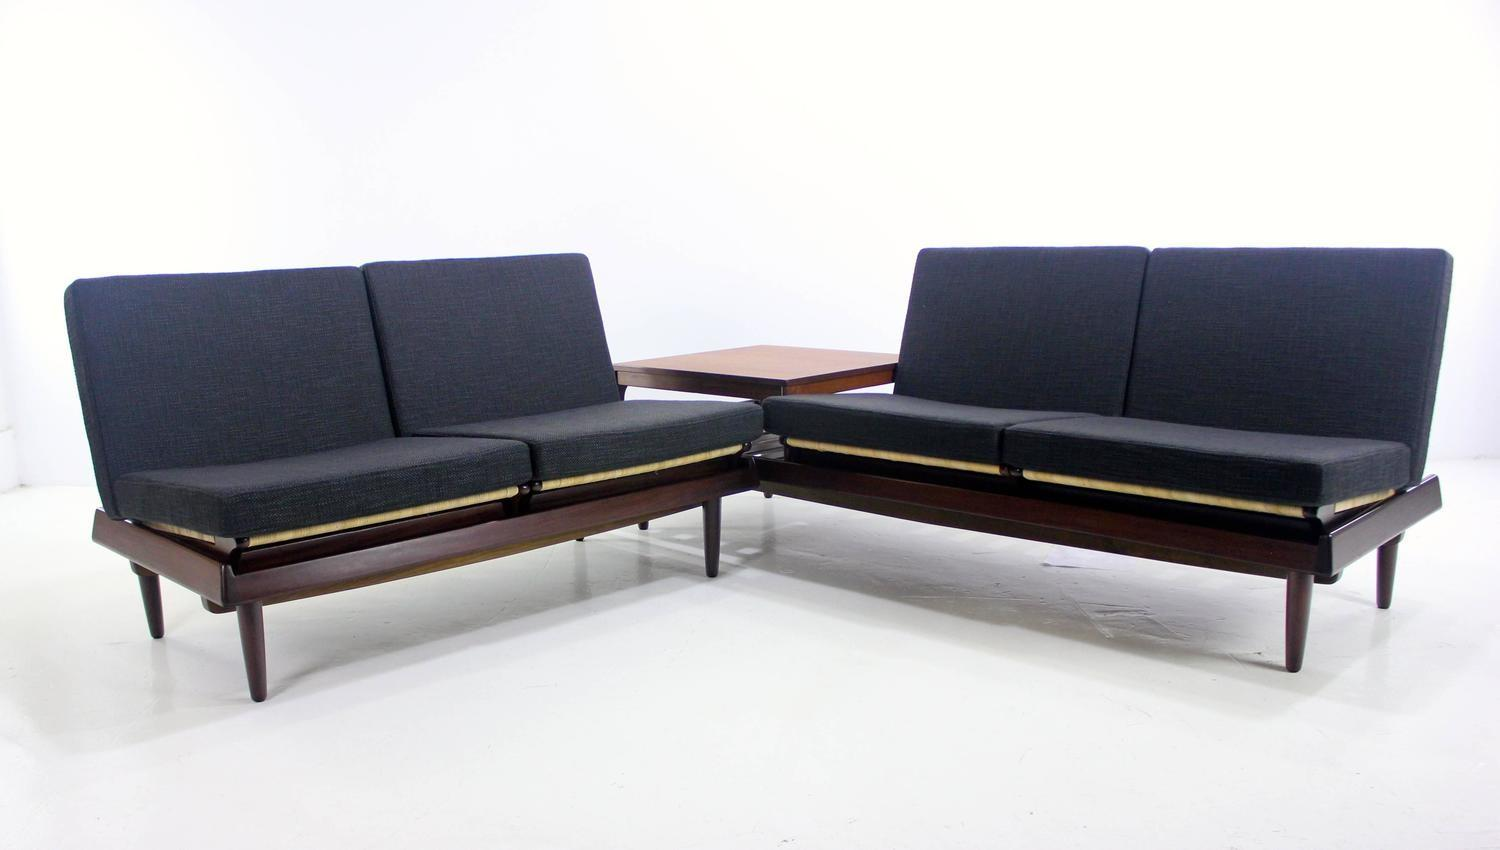 Danish Modern Modular Seating Group Designed Hans Olsen